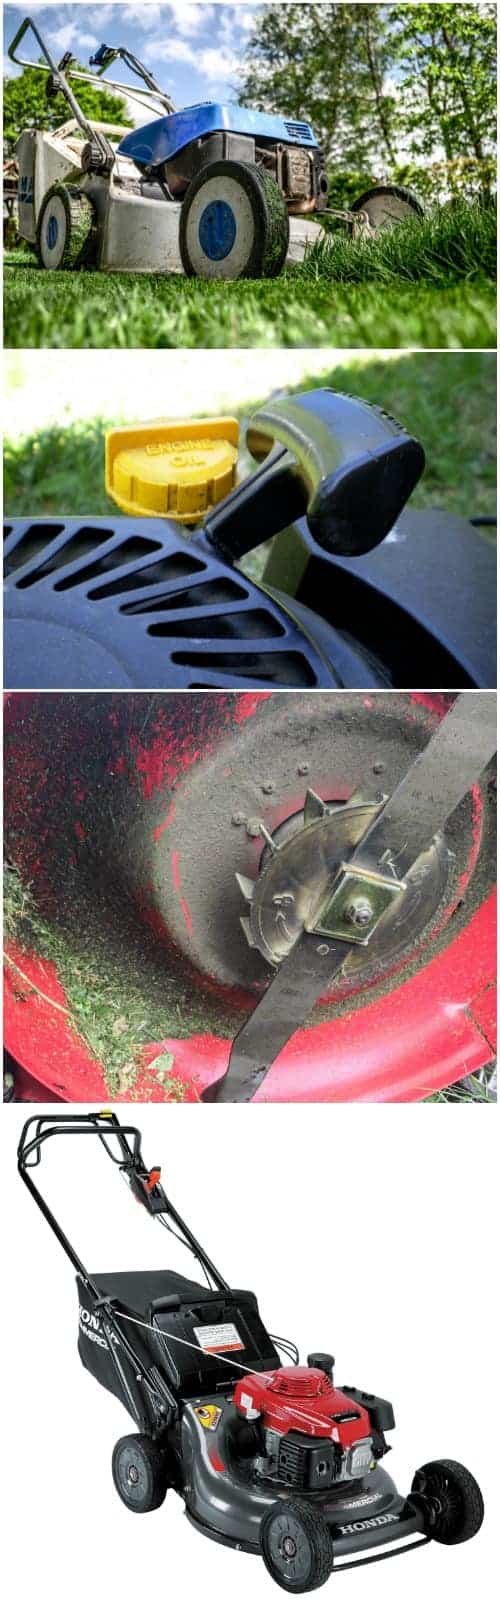 How To: Lawn Mower Repair and Maintenance